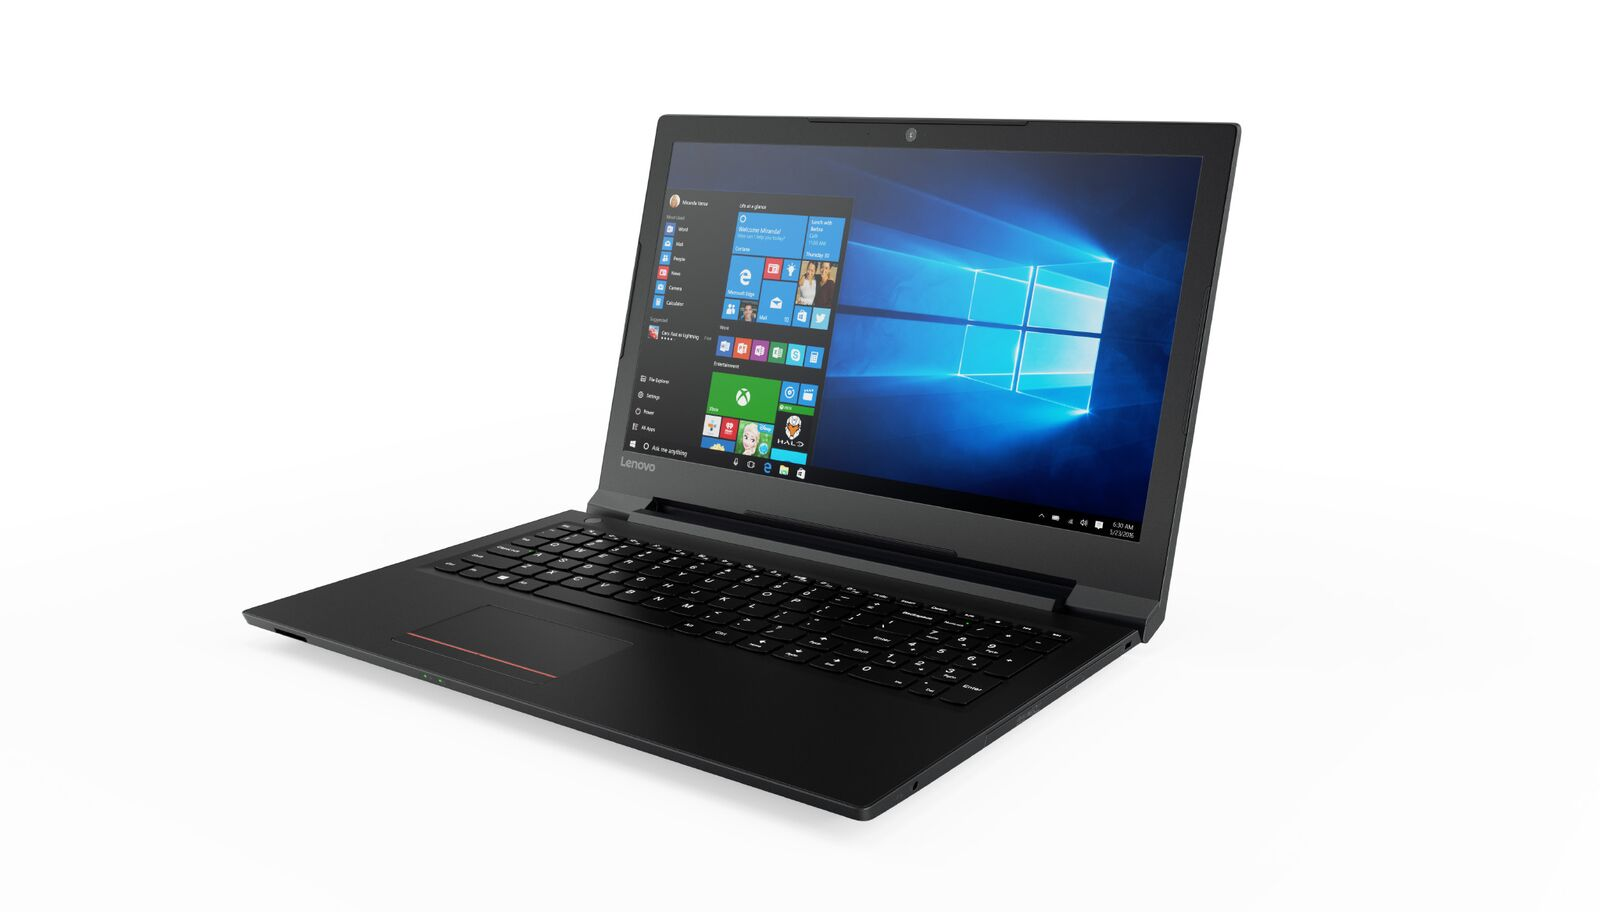 "Lenovo V110-15ISK i3-6006U/4GB/128GB SSD/DVD-RW/integrated/15,6""HD matný/Win10"